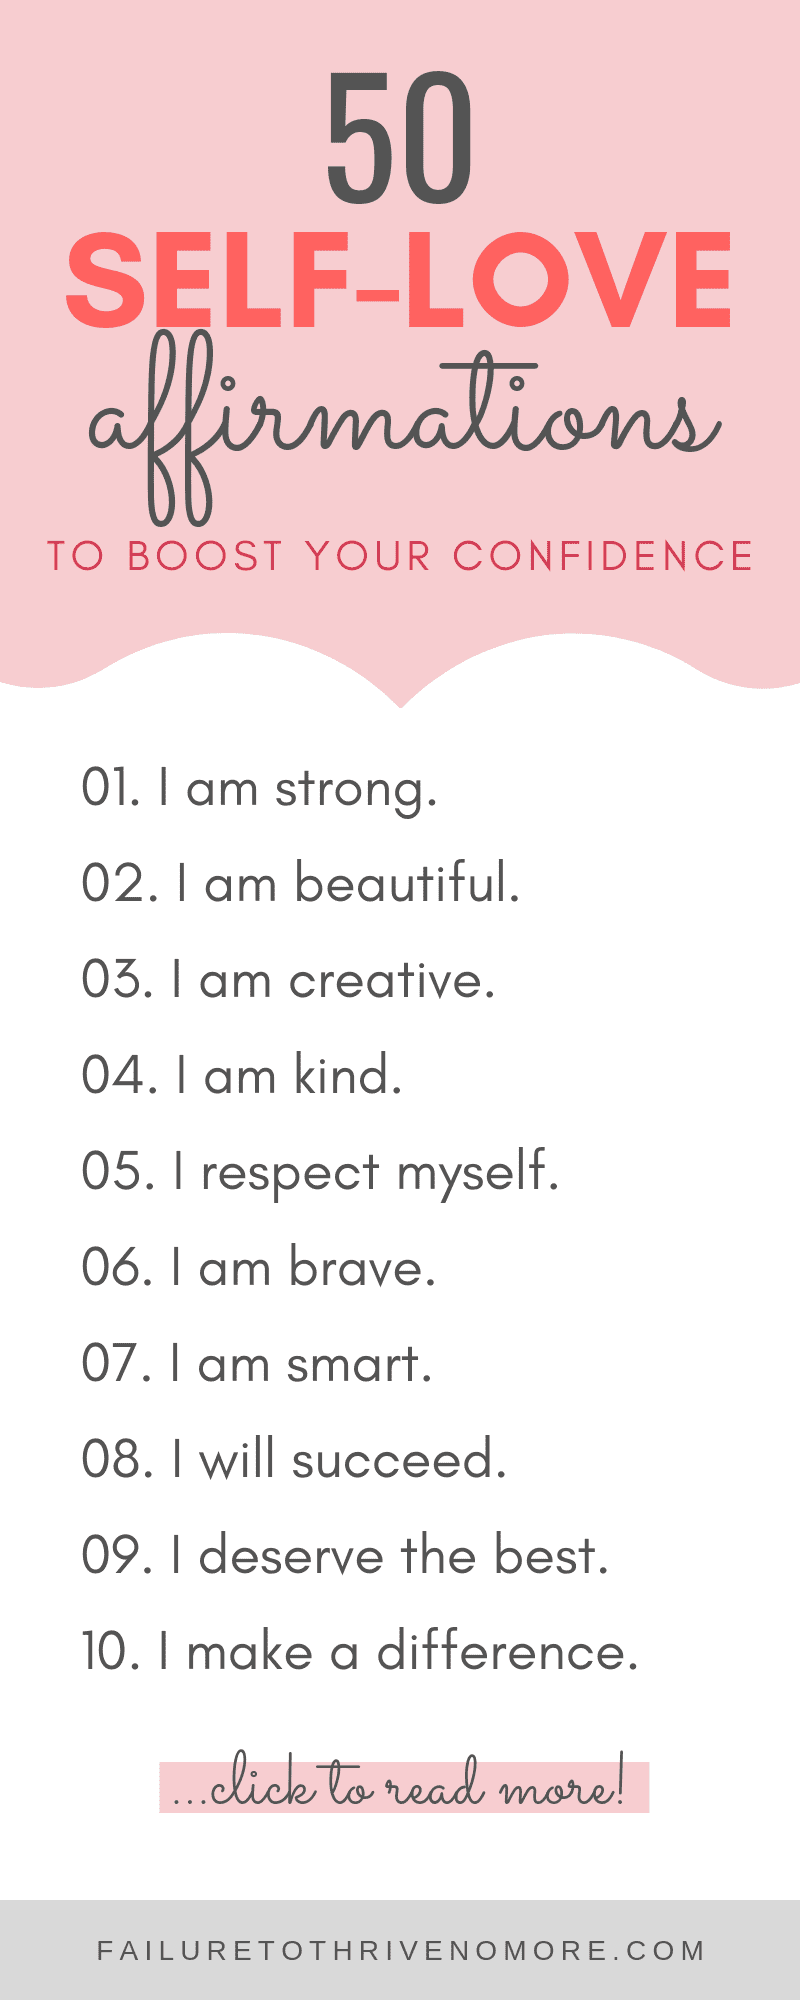 50 Self-love Affirmations to boost your confidence #affirmation #affirmationforanxiety #selflove #self-care #selfesteem #quotes #positive #dailyaffirmation #happiness #love #freebie #printables